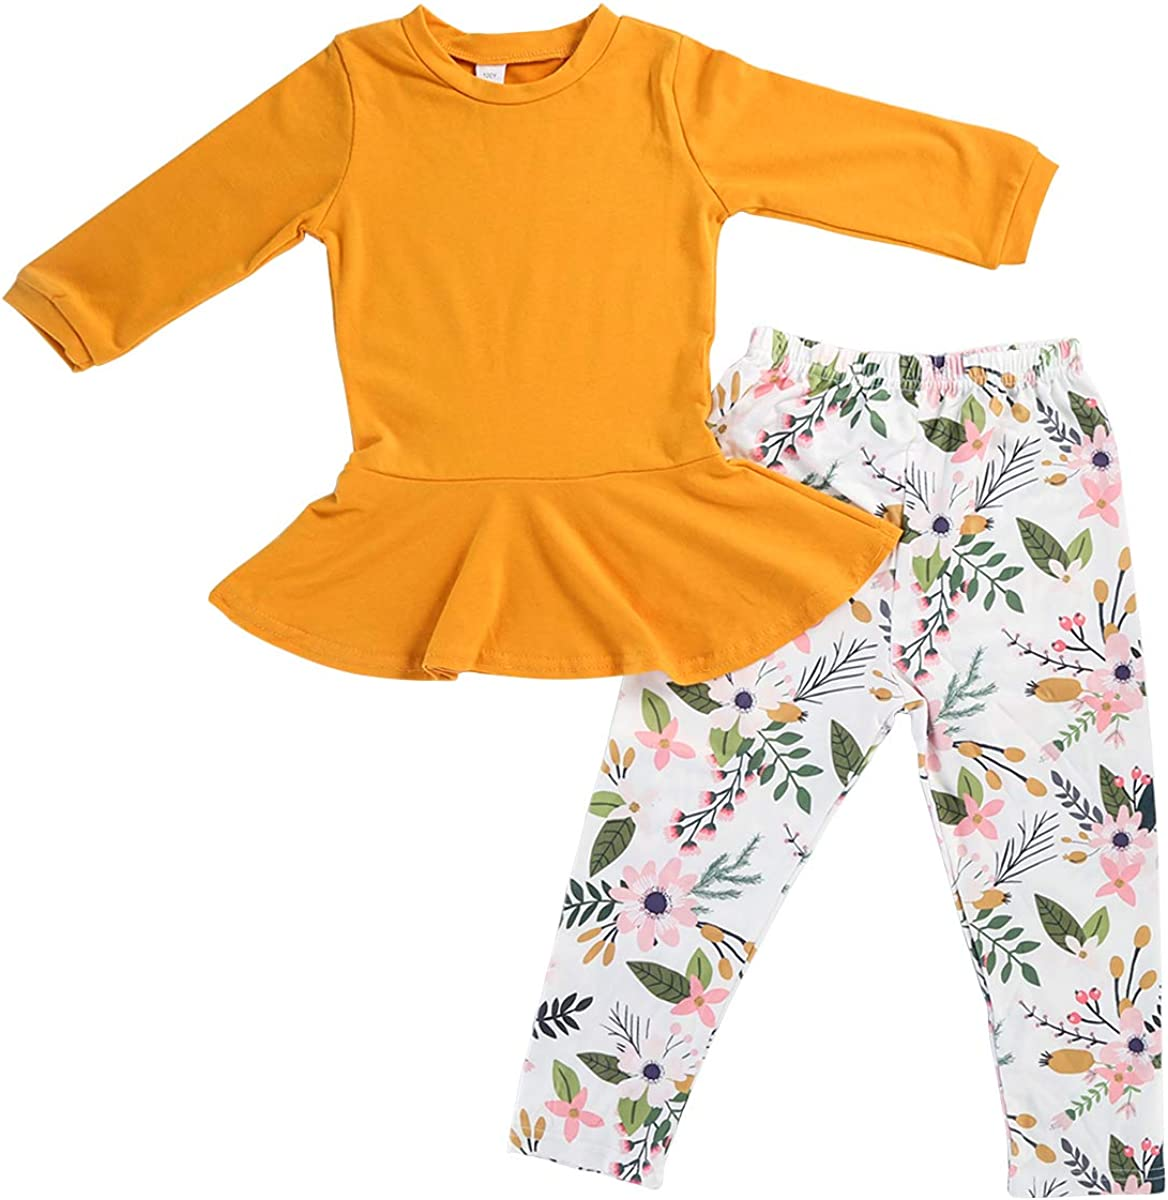 Yudanny Girls Outfit Clothes Long Sleeve Top Dress /& Floral Pant Set for 6-7 Years Old